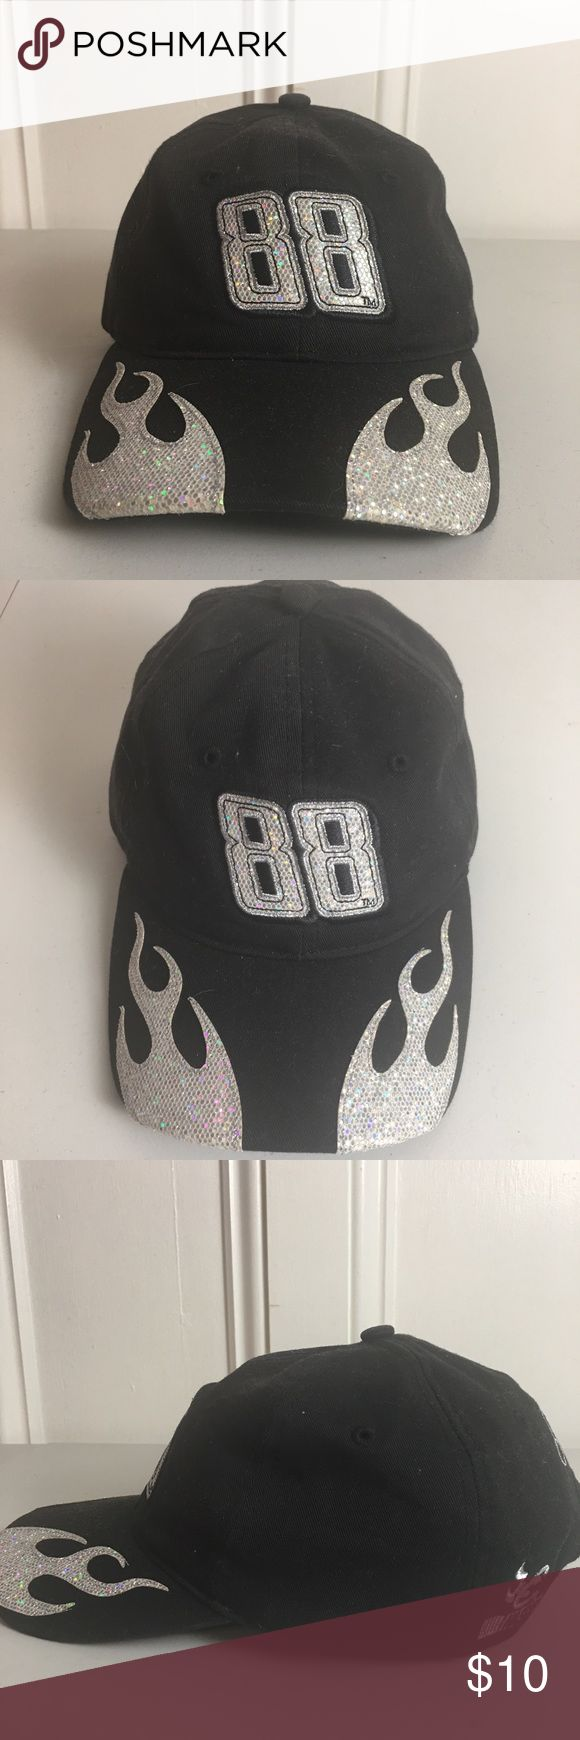 Dale Earnhardt '88' NASCAR Strapback Hat Dale Earnhardt '88' NASCAR Strapback Hat. Black with silver detail. One Size. 100% cotton. Previously owned, good condition. Accessories Hats